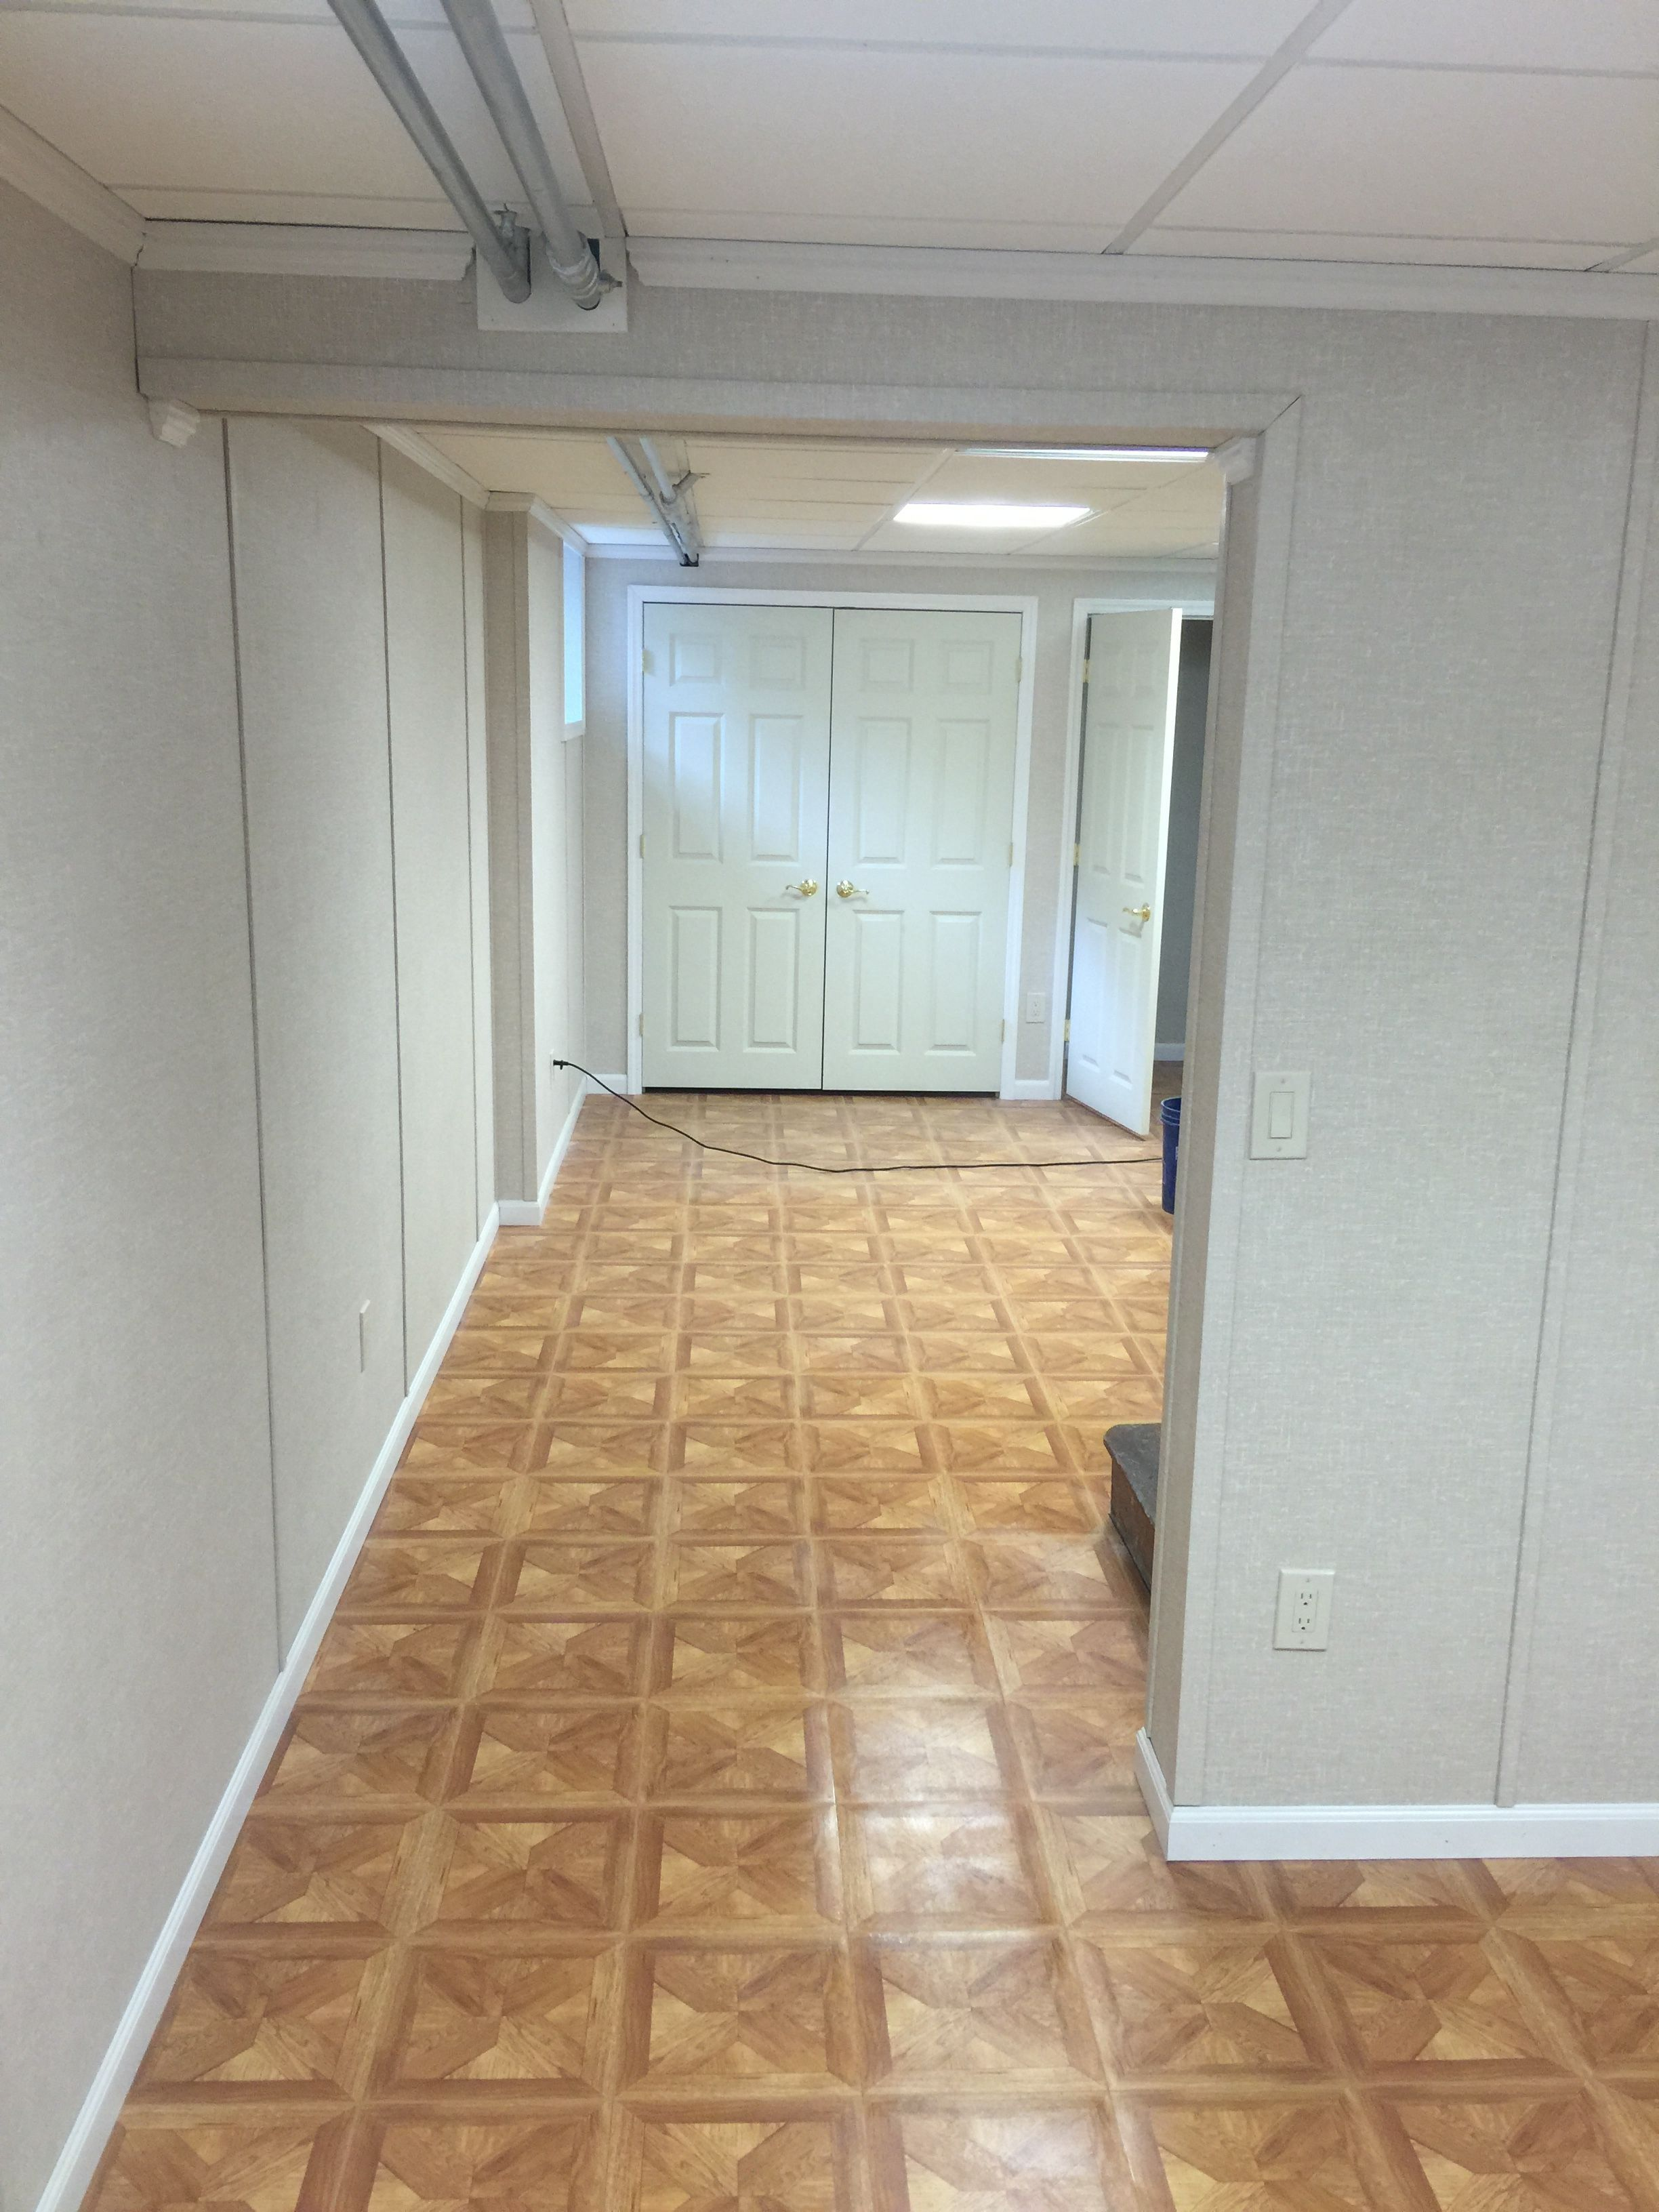 Thermaldry Basement Floor Waterproofing Tiles Basement Flooring